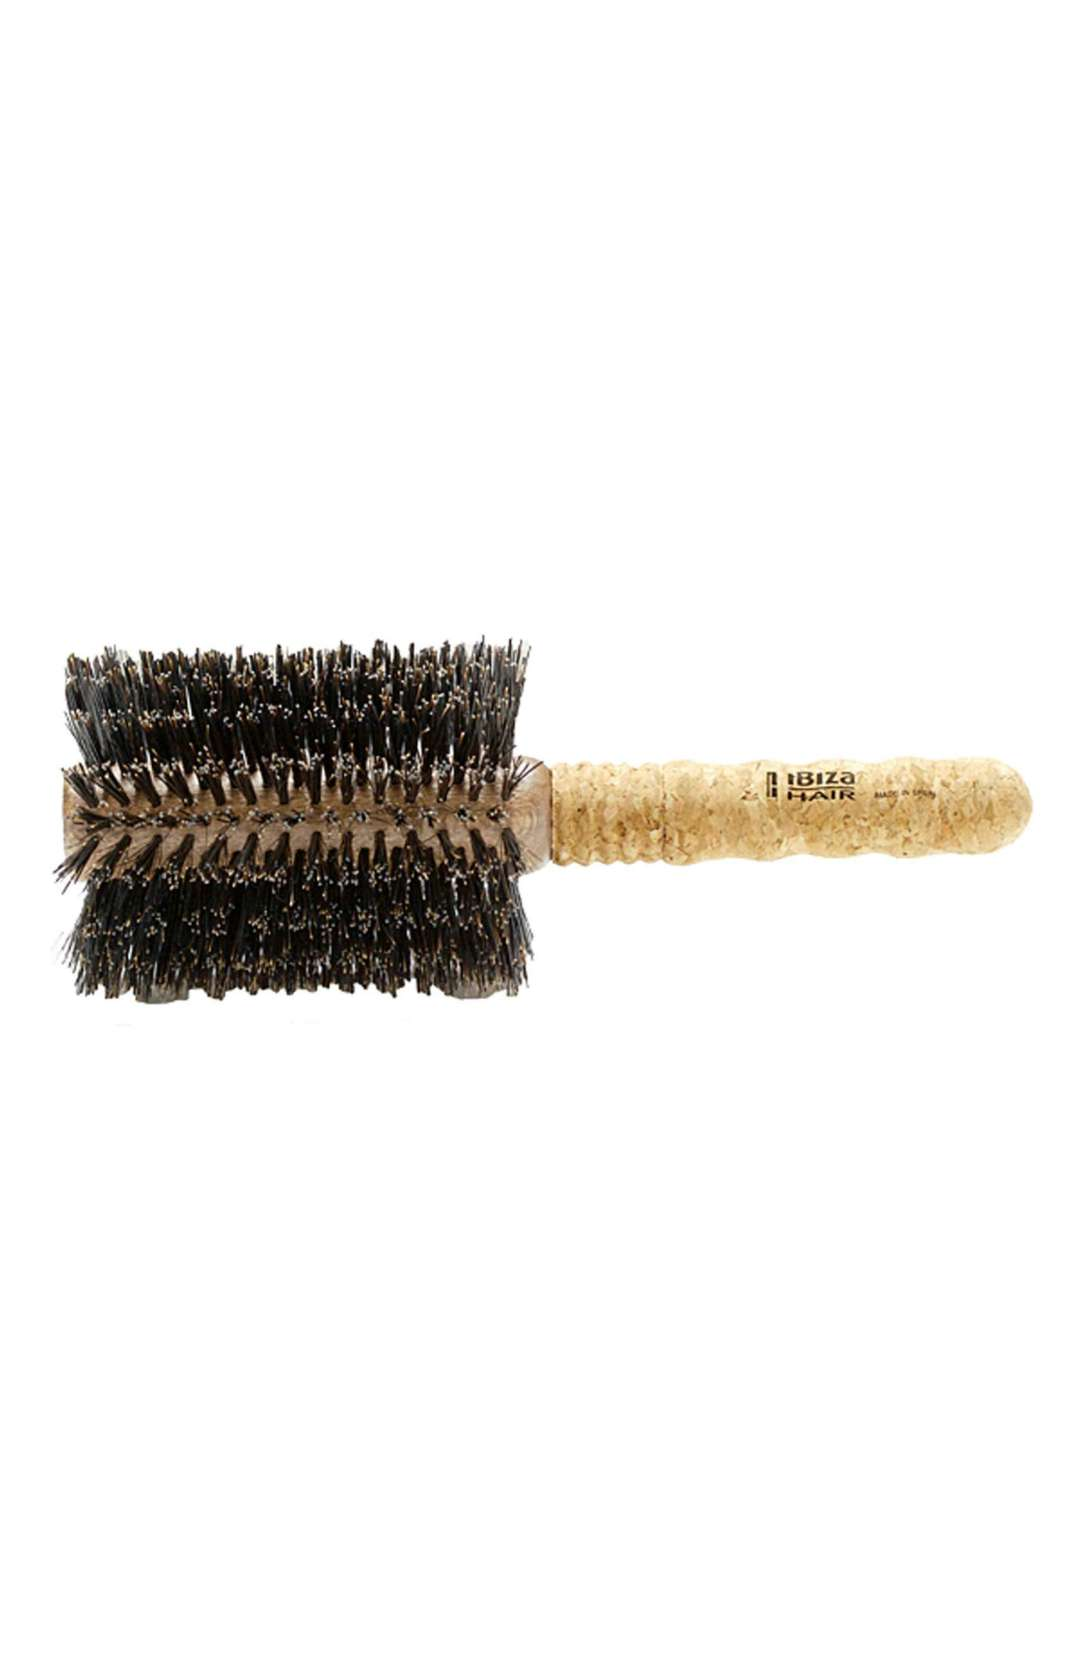 Ibiza Collection Extended Cork Round Brush Extra Large